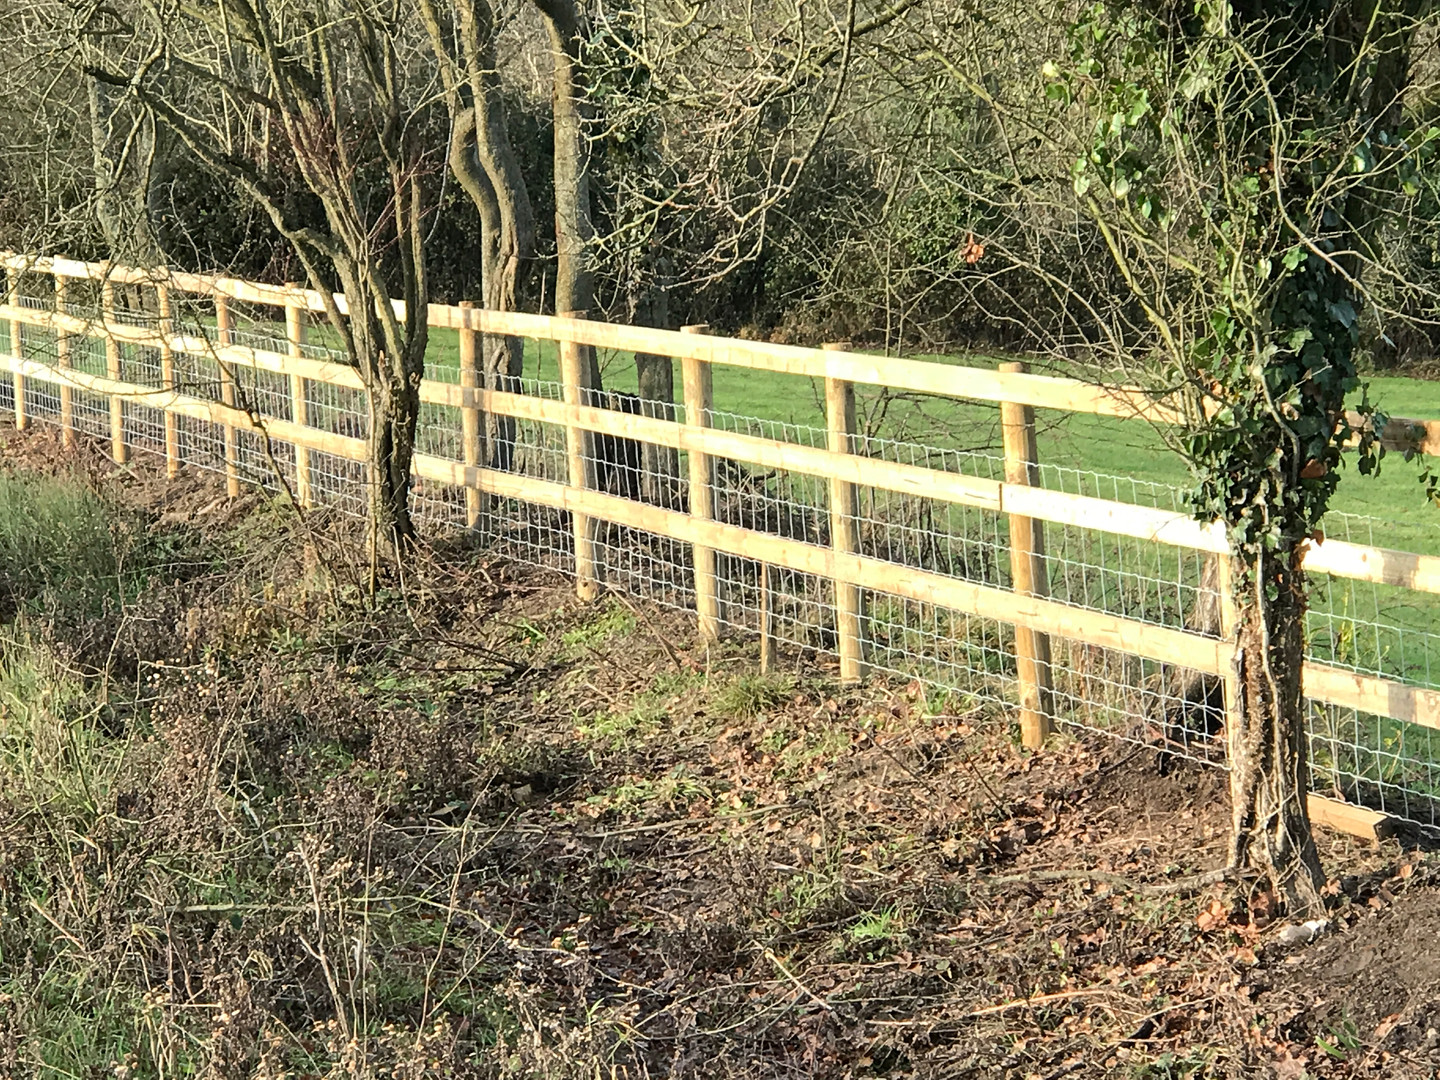 equestrian and livestock fence